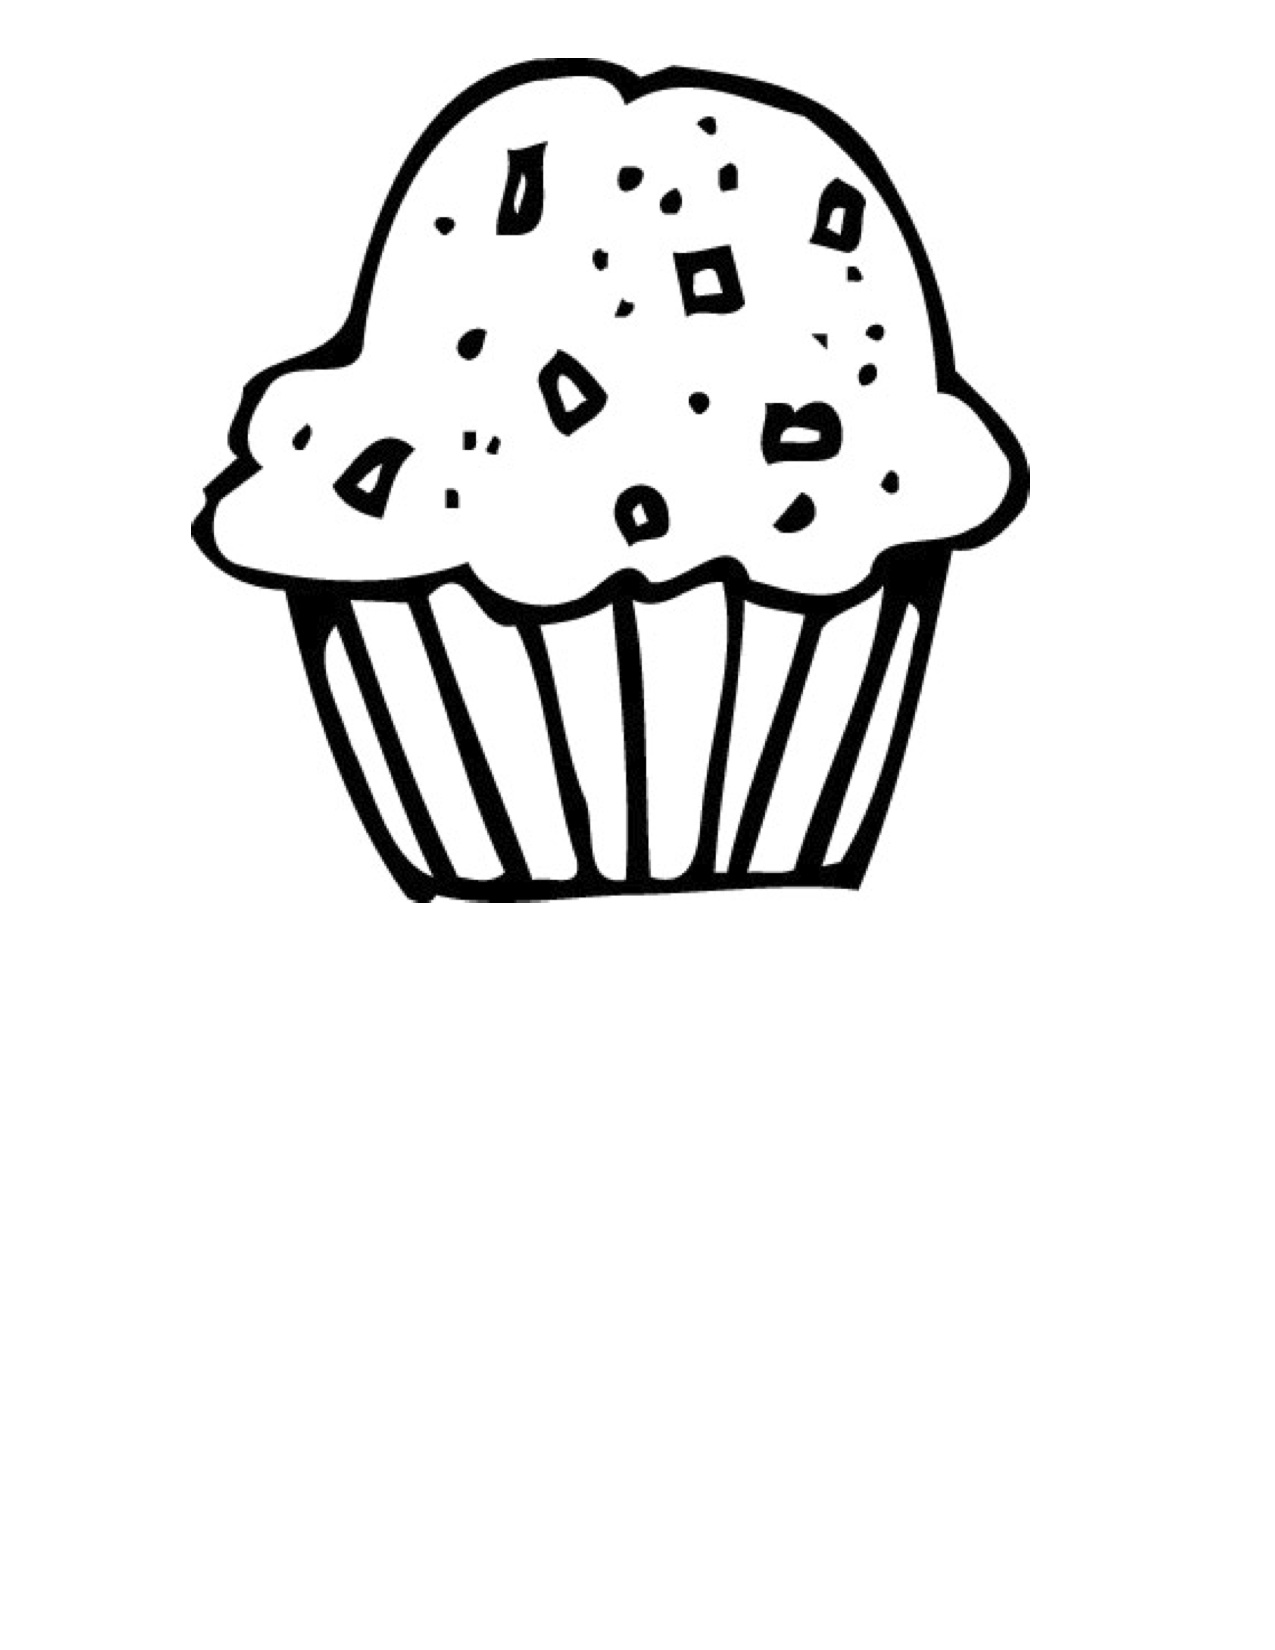 Cupcake Outline Clipart Black And White